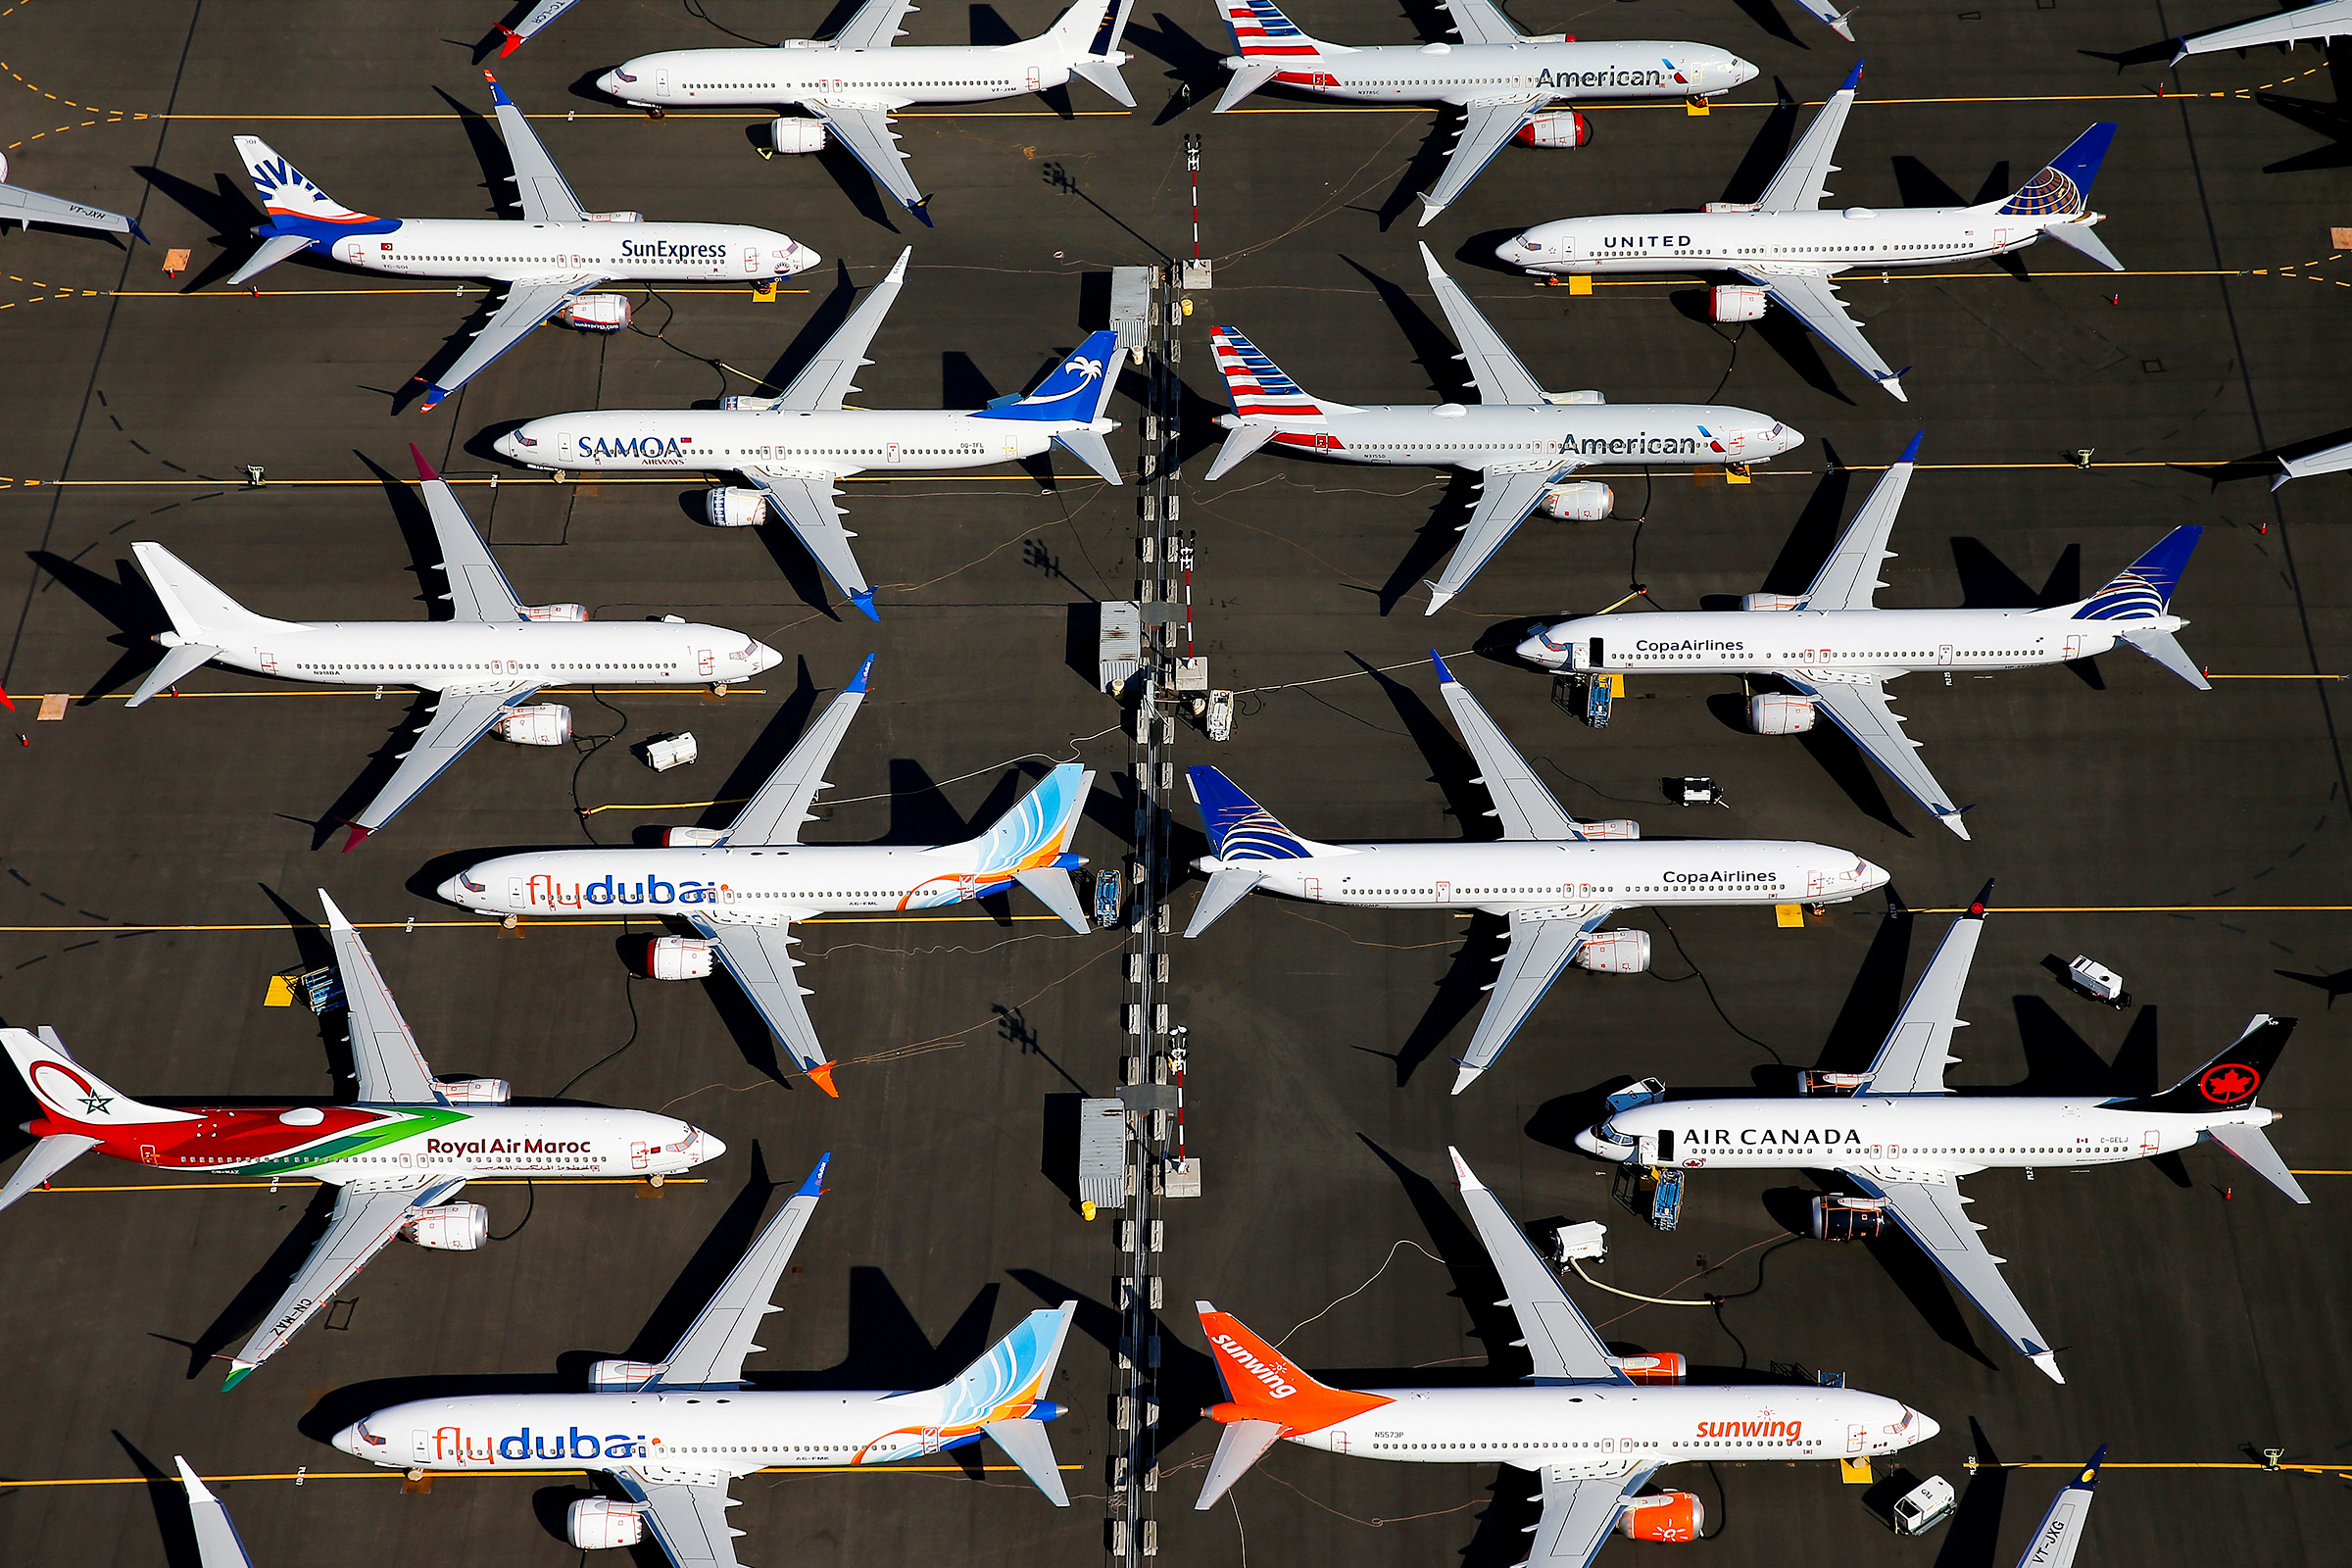 Boeing S 737 Max Crisis Was Fueled By A Shareholder First Company Culture Fortune